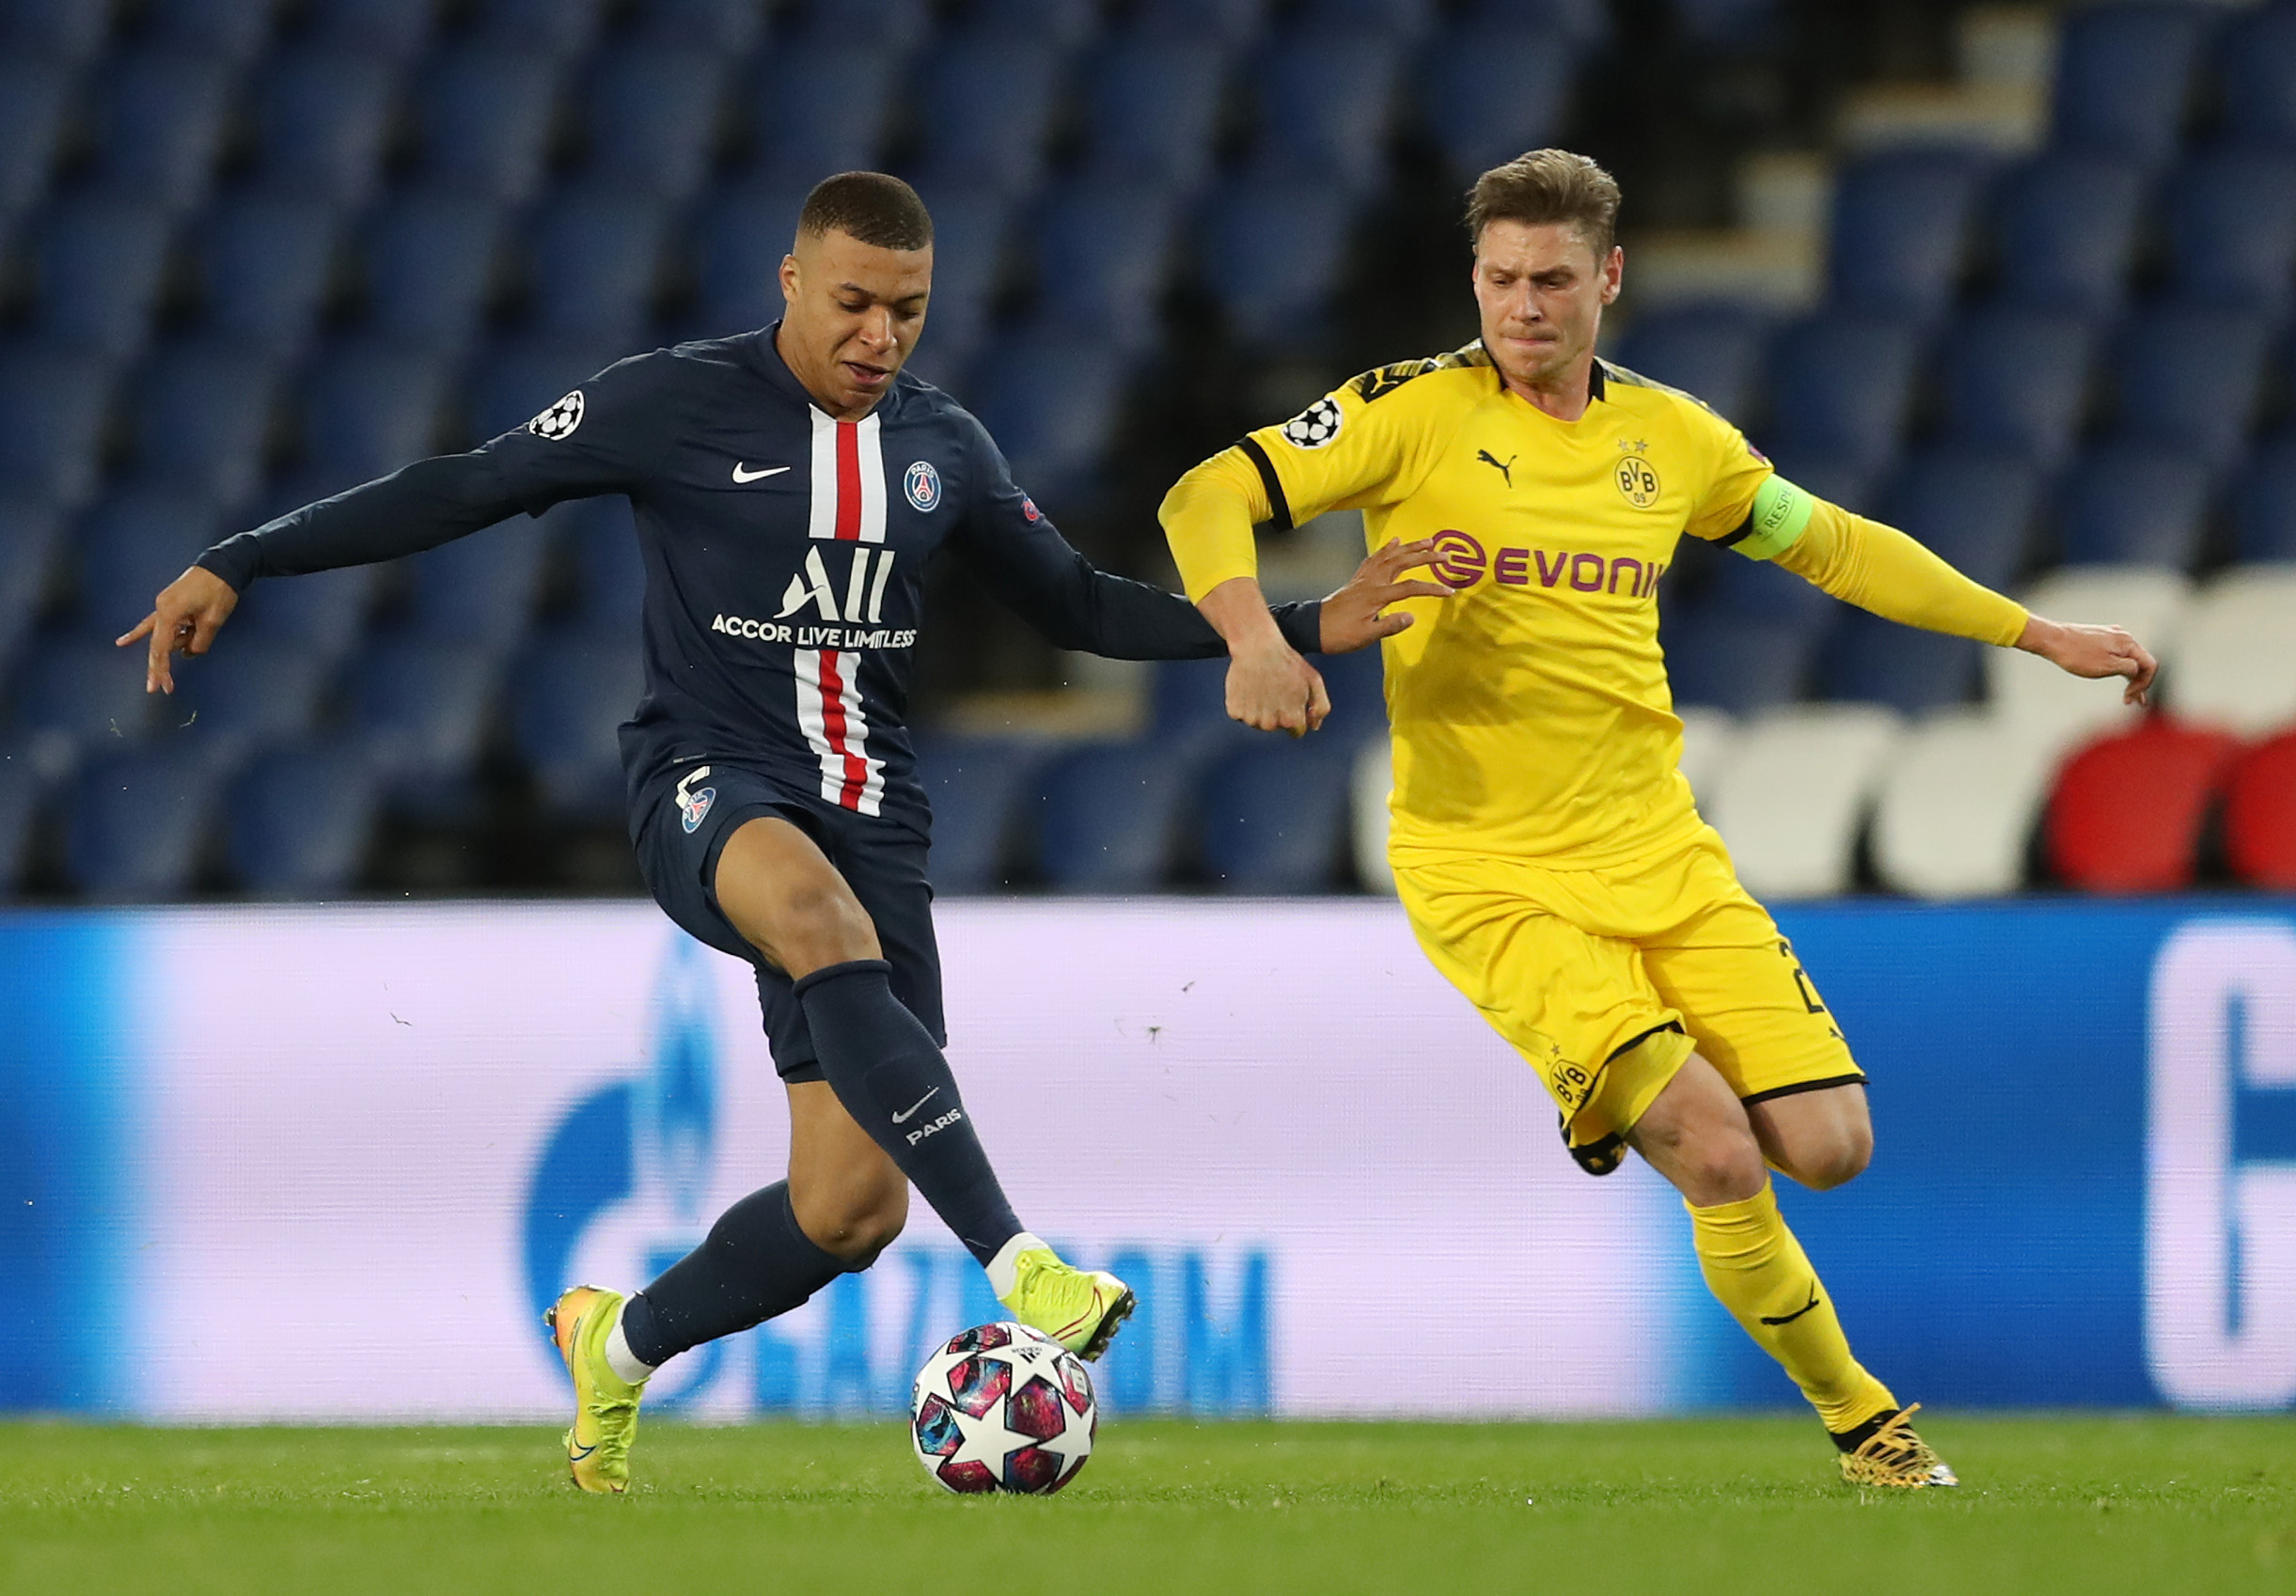 Kylian Mbappé of Paris Saint-Germain (left) is challenged by Lukasz Piszczek (right) of Borussia Dortmund during the UEFA Champions League in Paris, France on March 11.